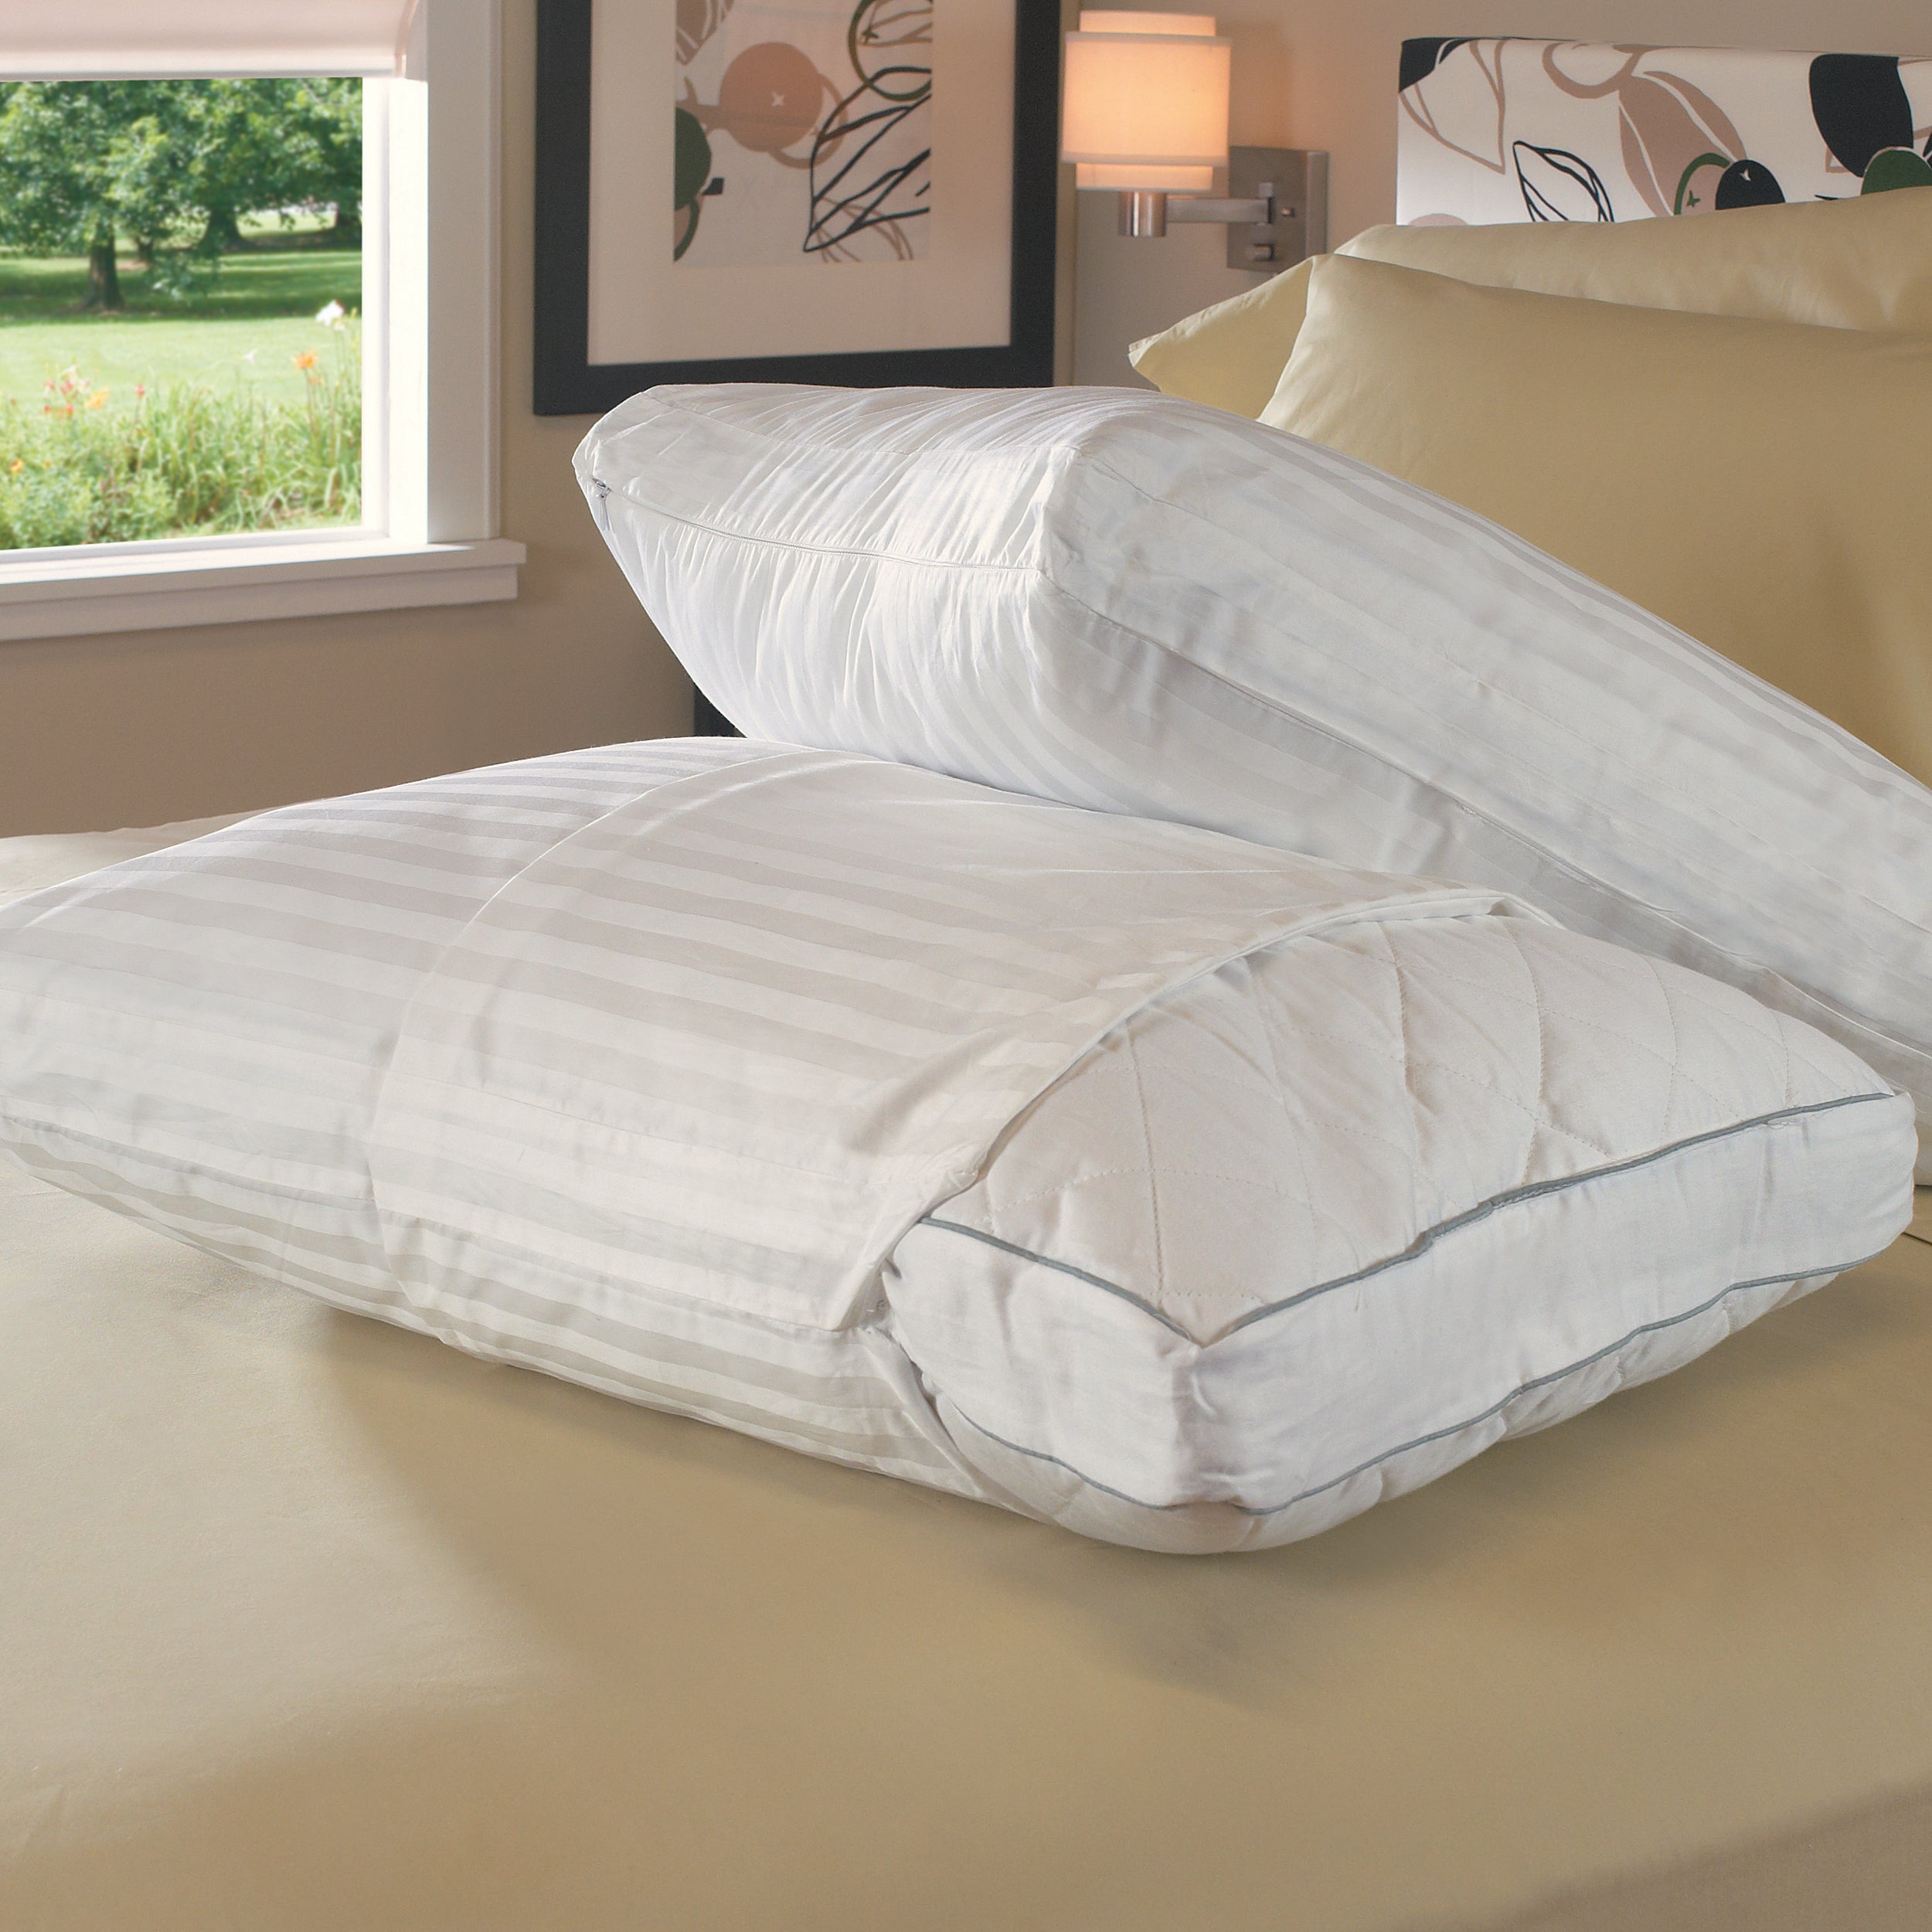 Rest Fresh Antimicrobial 400 Thread Count Gusseted Zip Pillow Protectors (Set of 2)